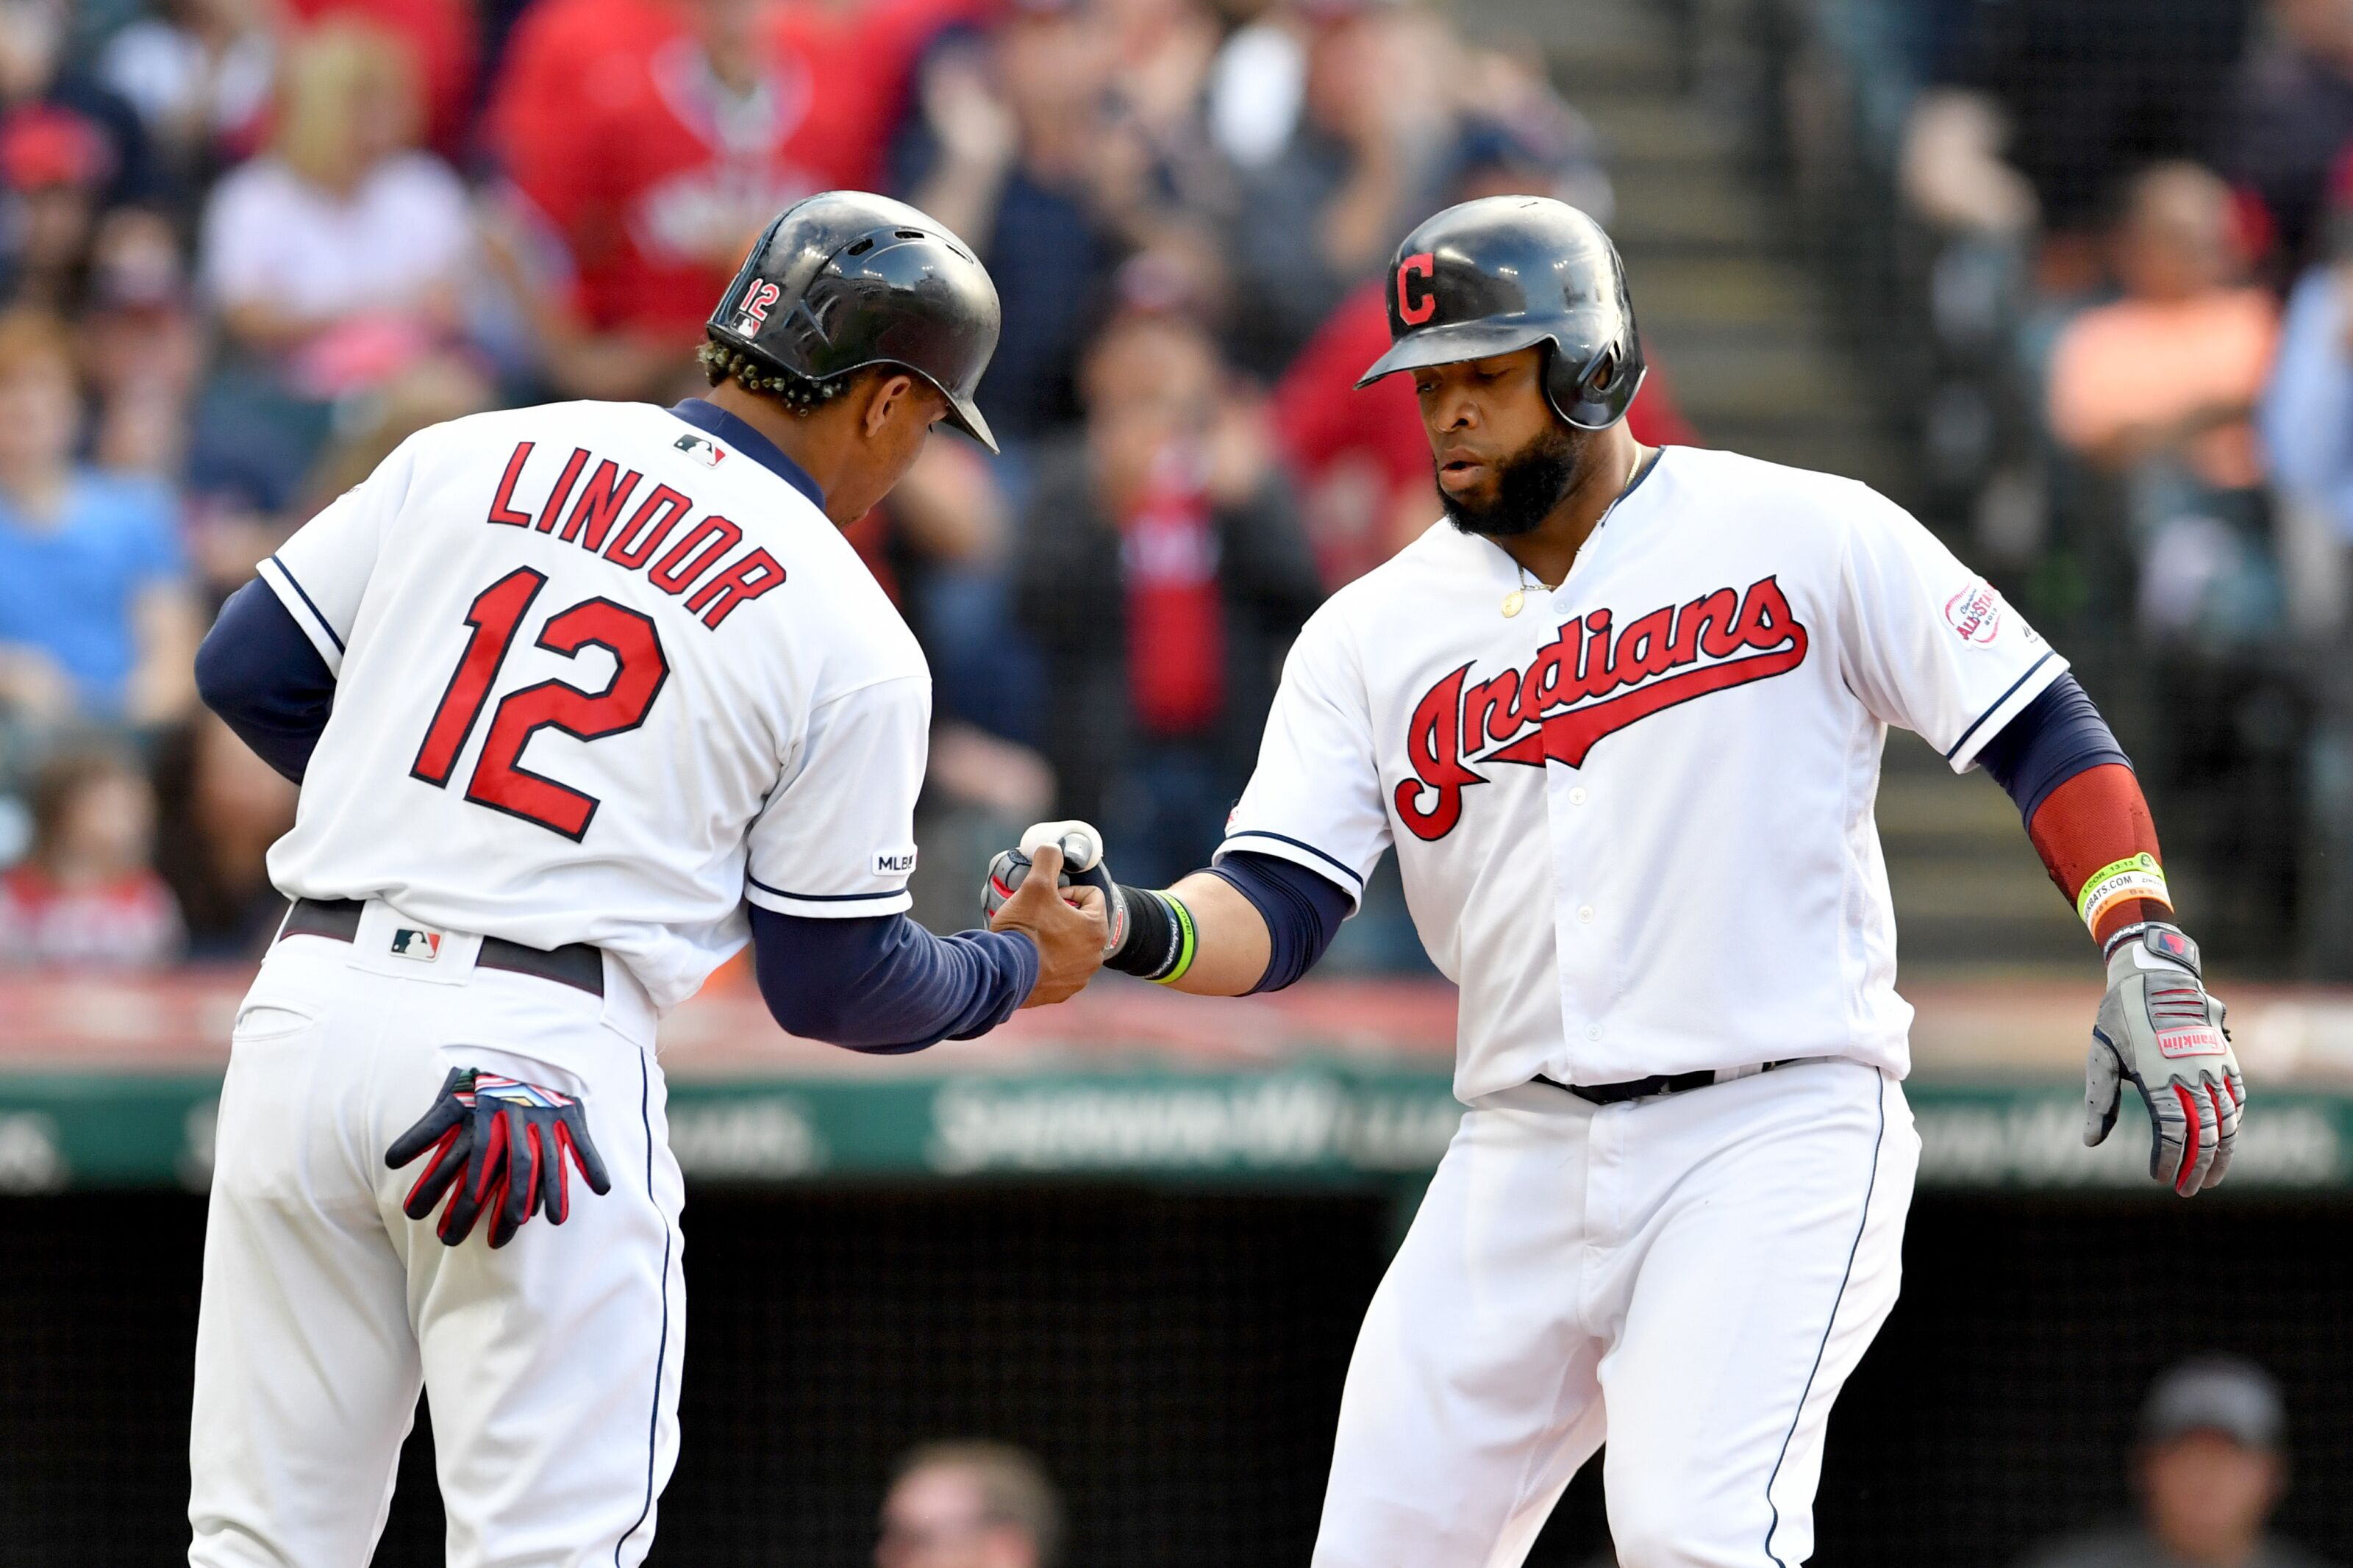 Cleveland Indians: Will Tribe be buyers or sellers at MLB trade deadline?